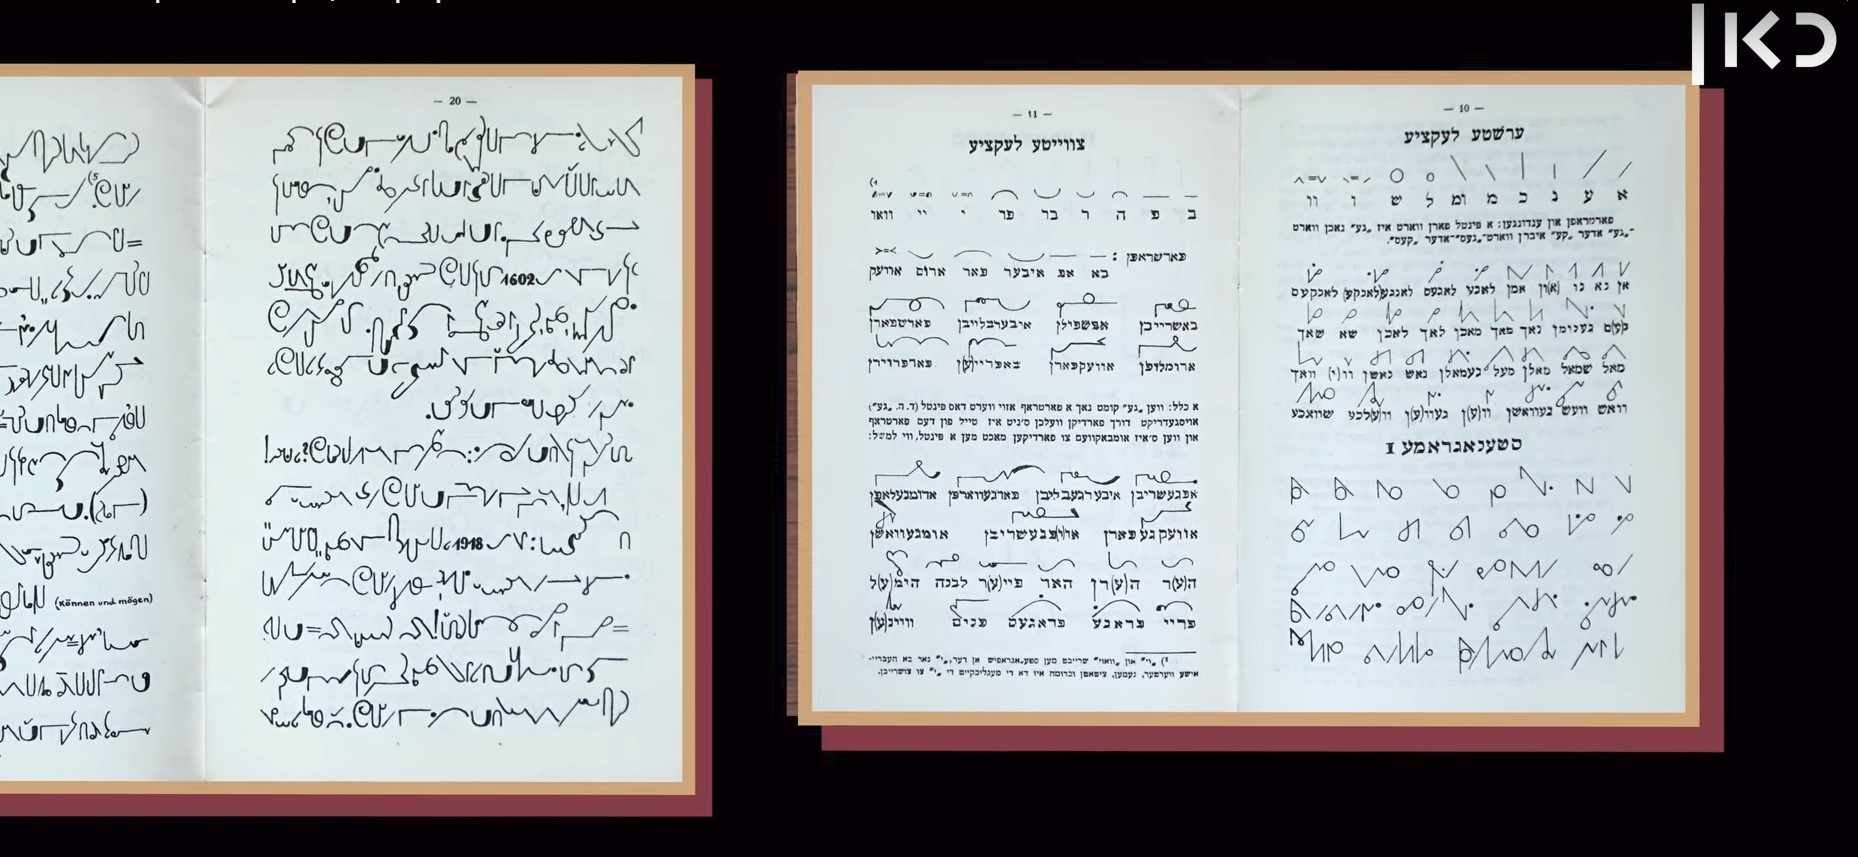 Sir Isaac Pitman Shorthand Dictionary Download